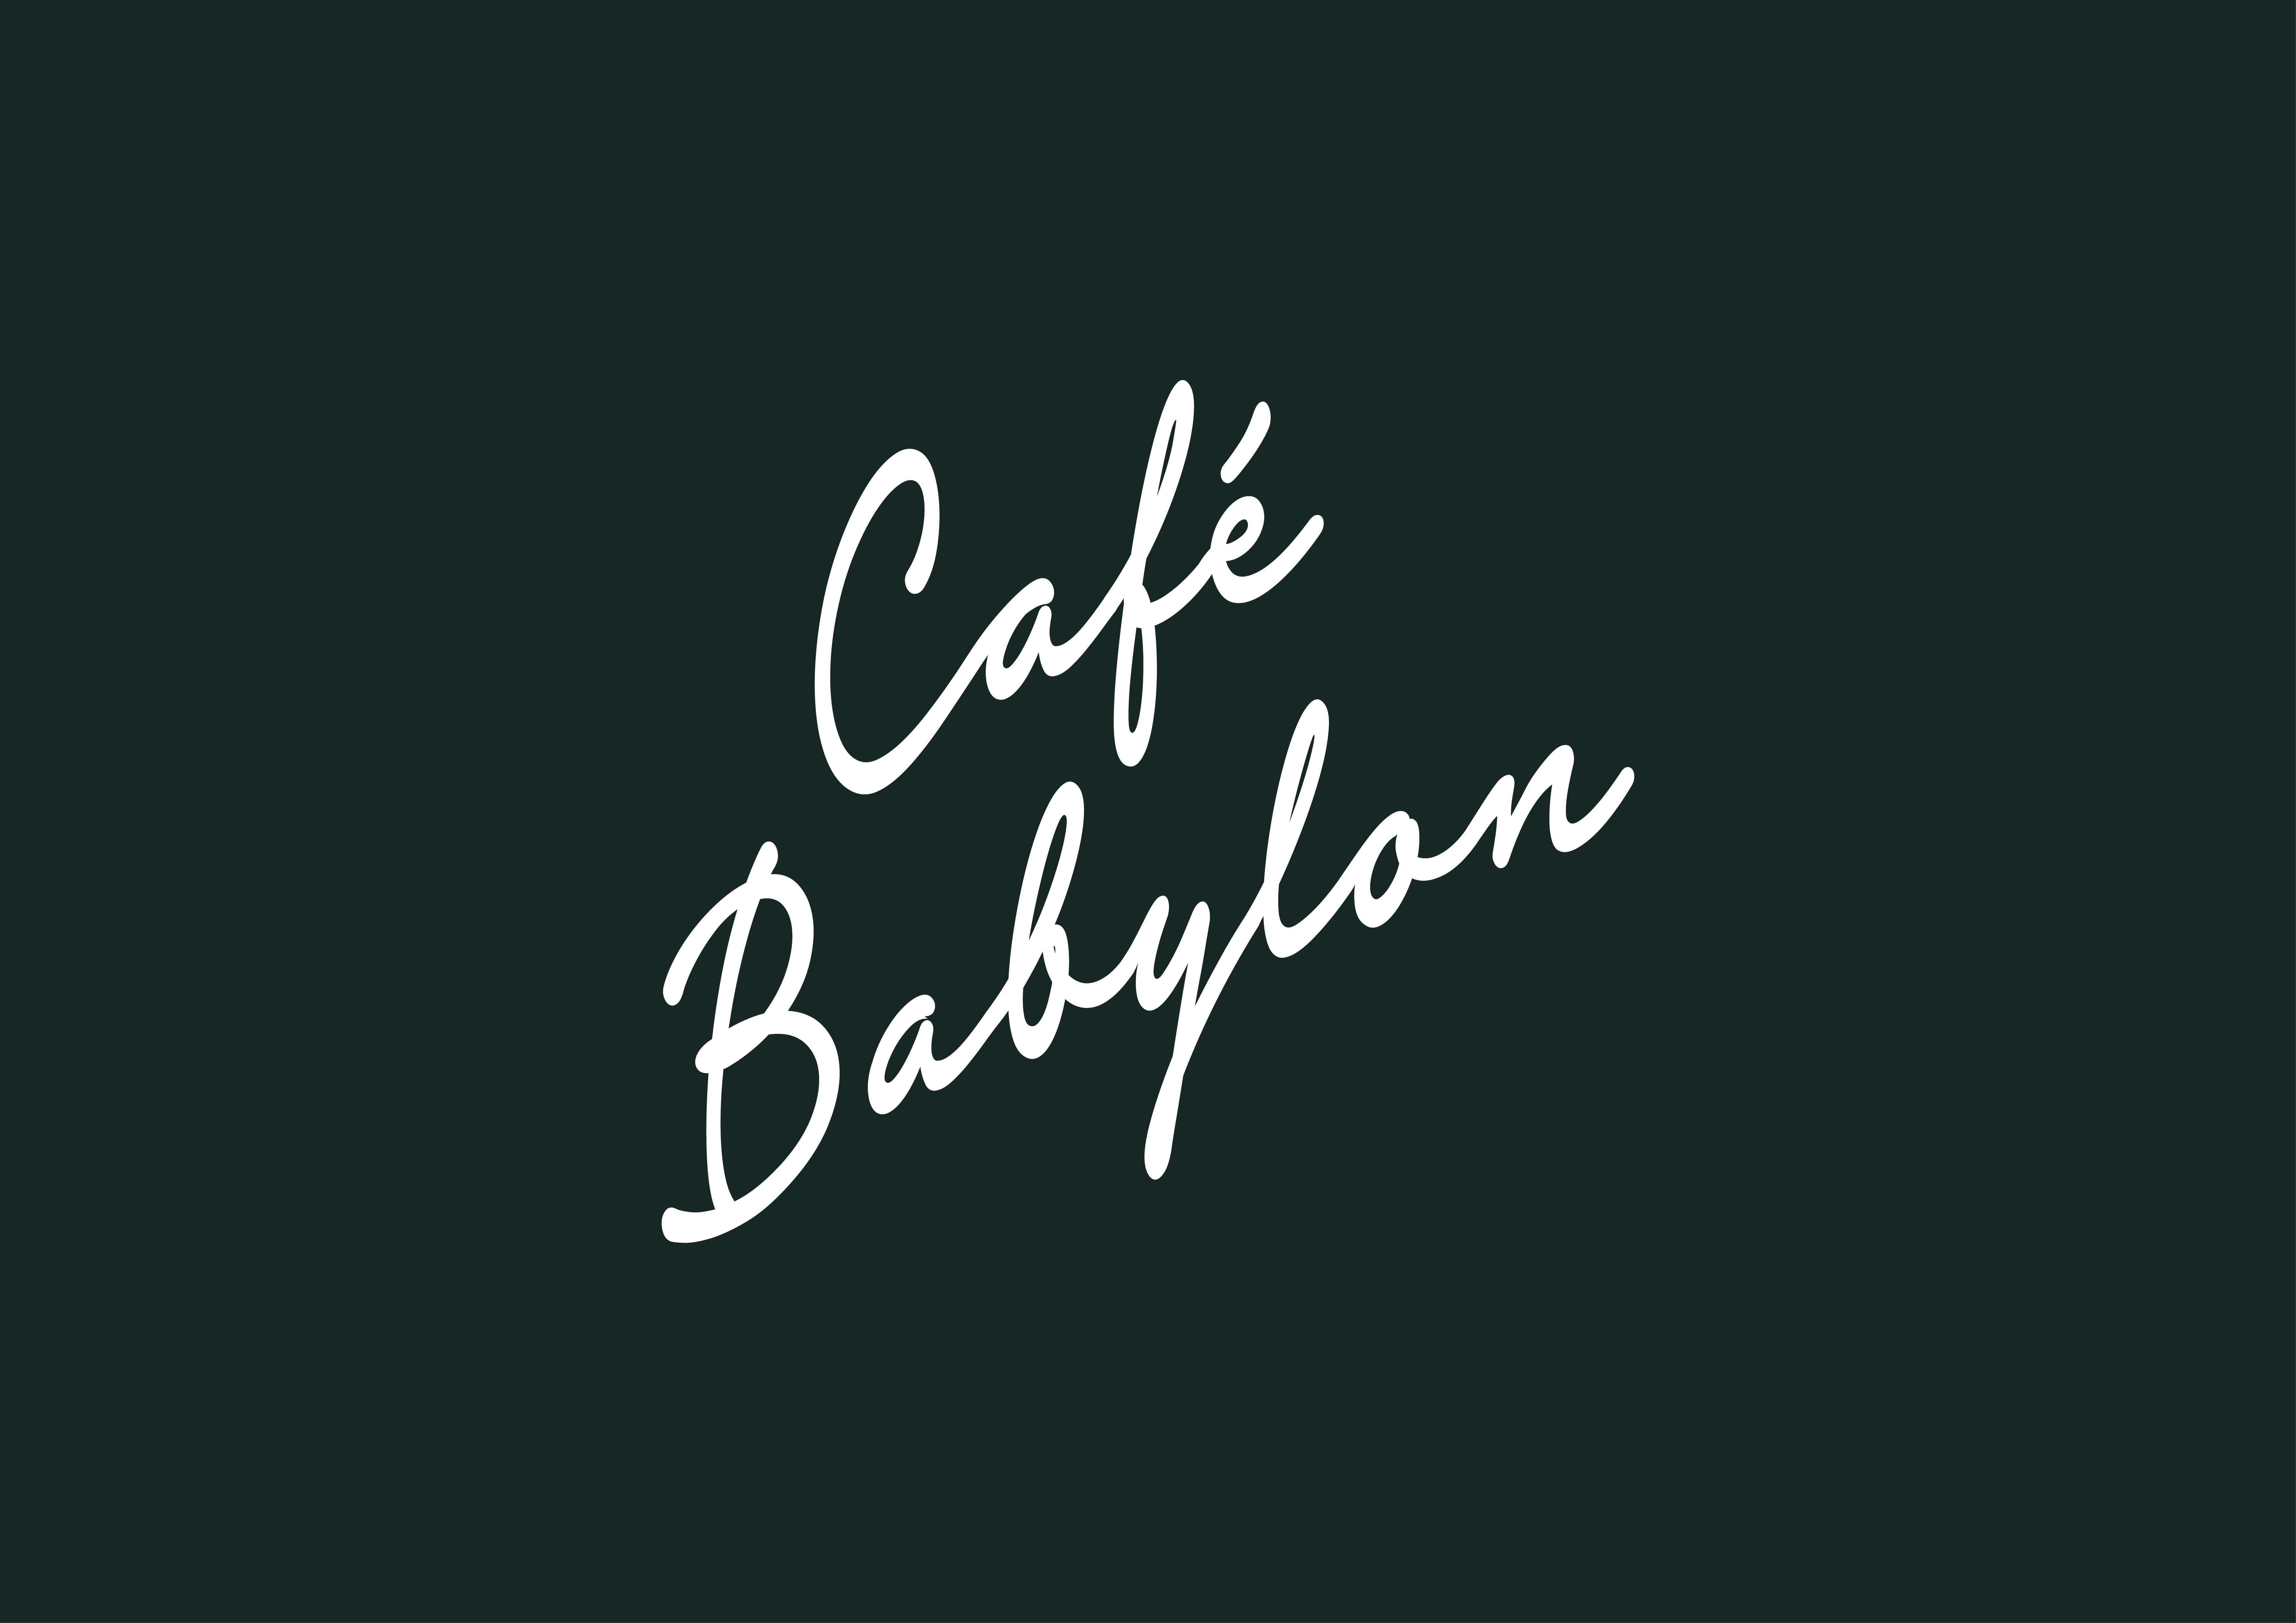 Cafe babylon   original